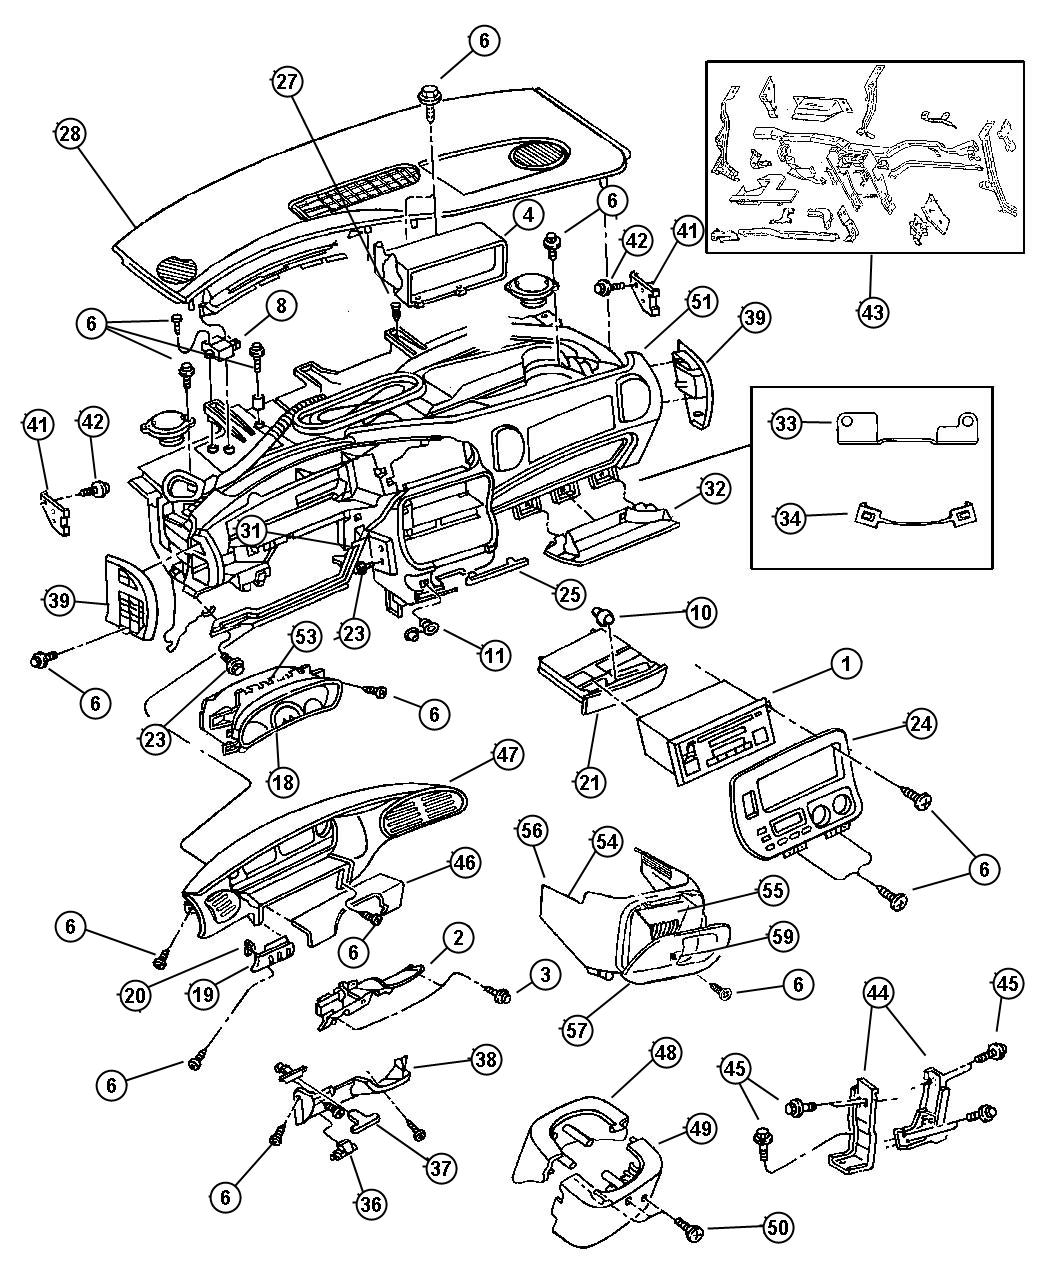 2002 Chrysler Voyager Radio Wiring Diagram Trusted Wire Archive Of Automotive Vw Passat